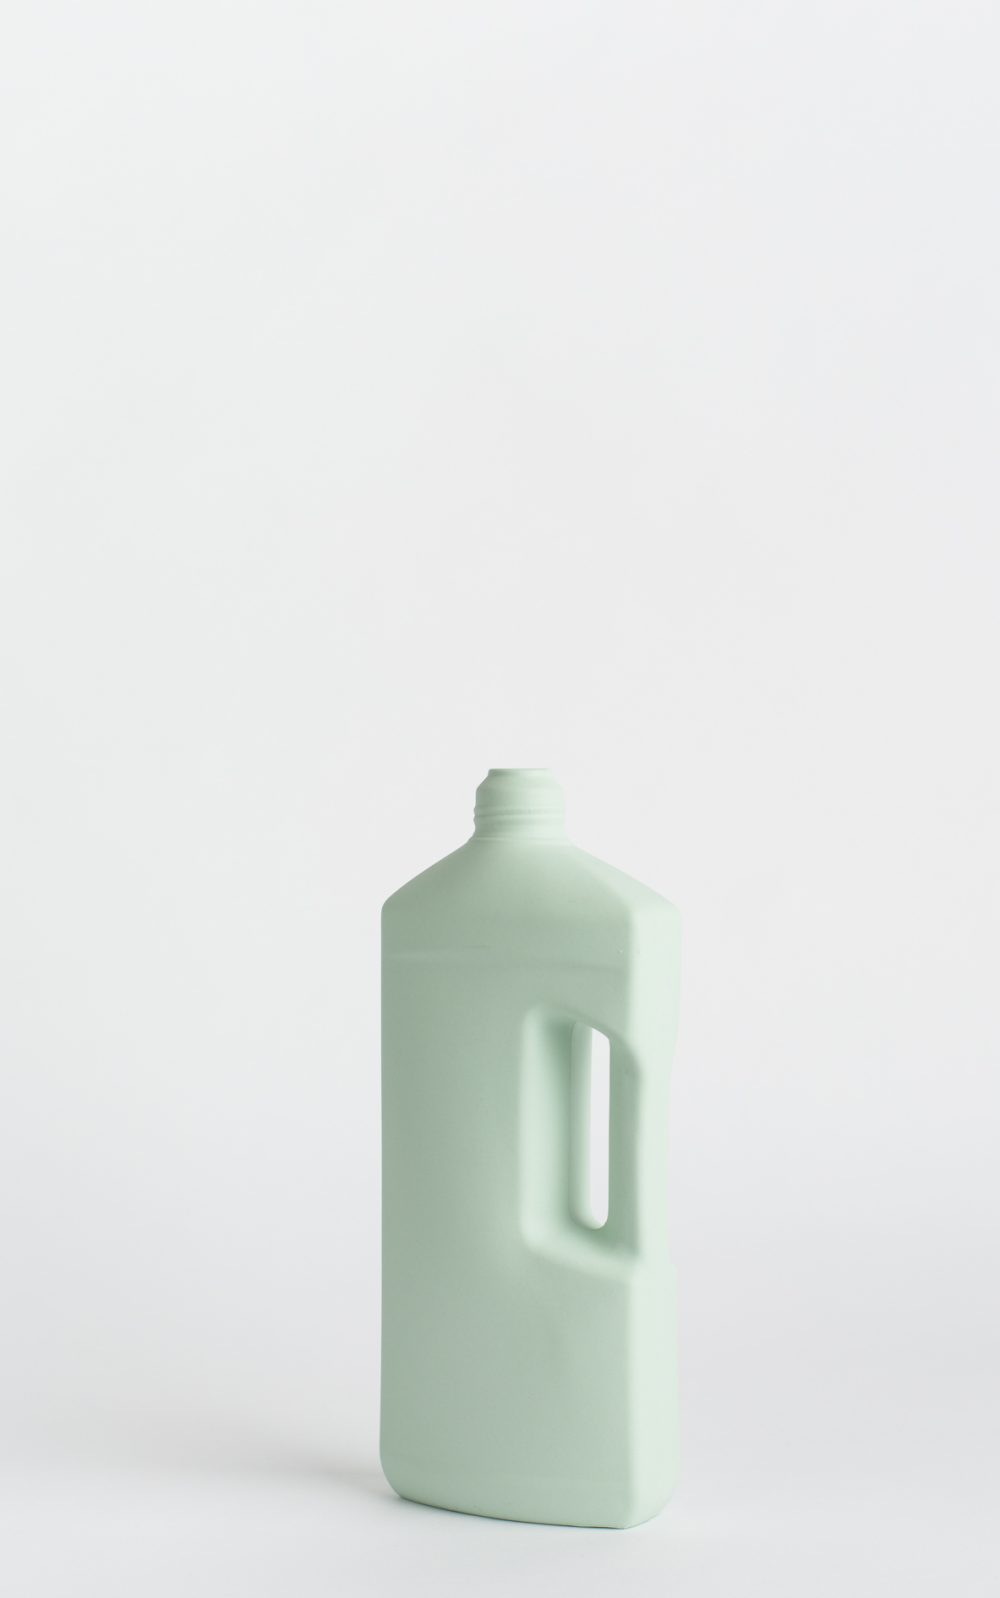 bottle vase #3 mint